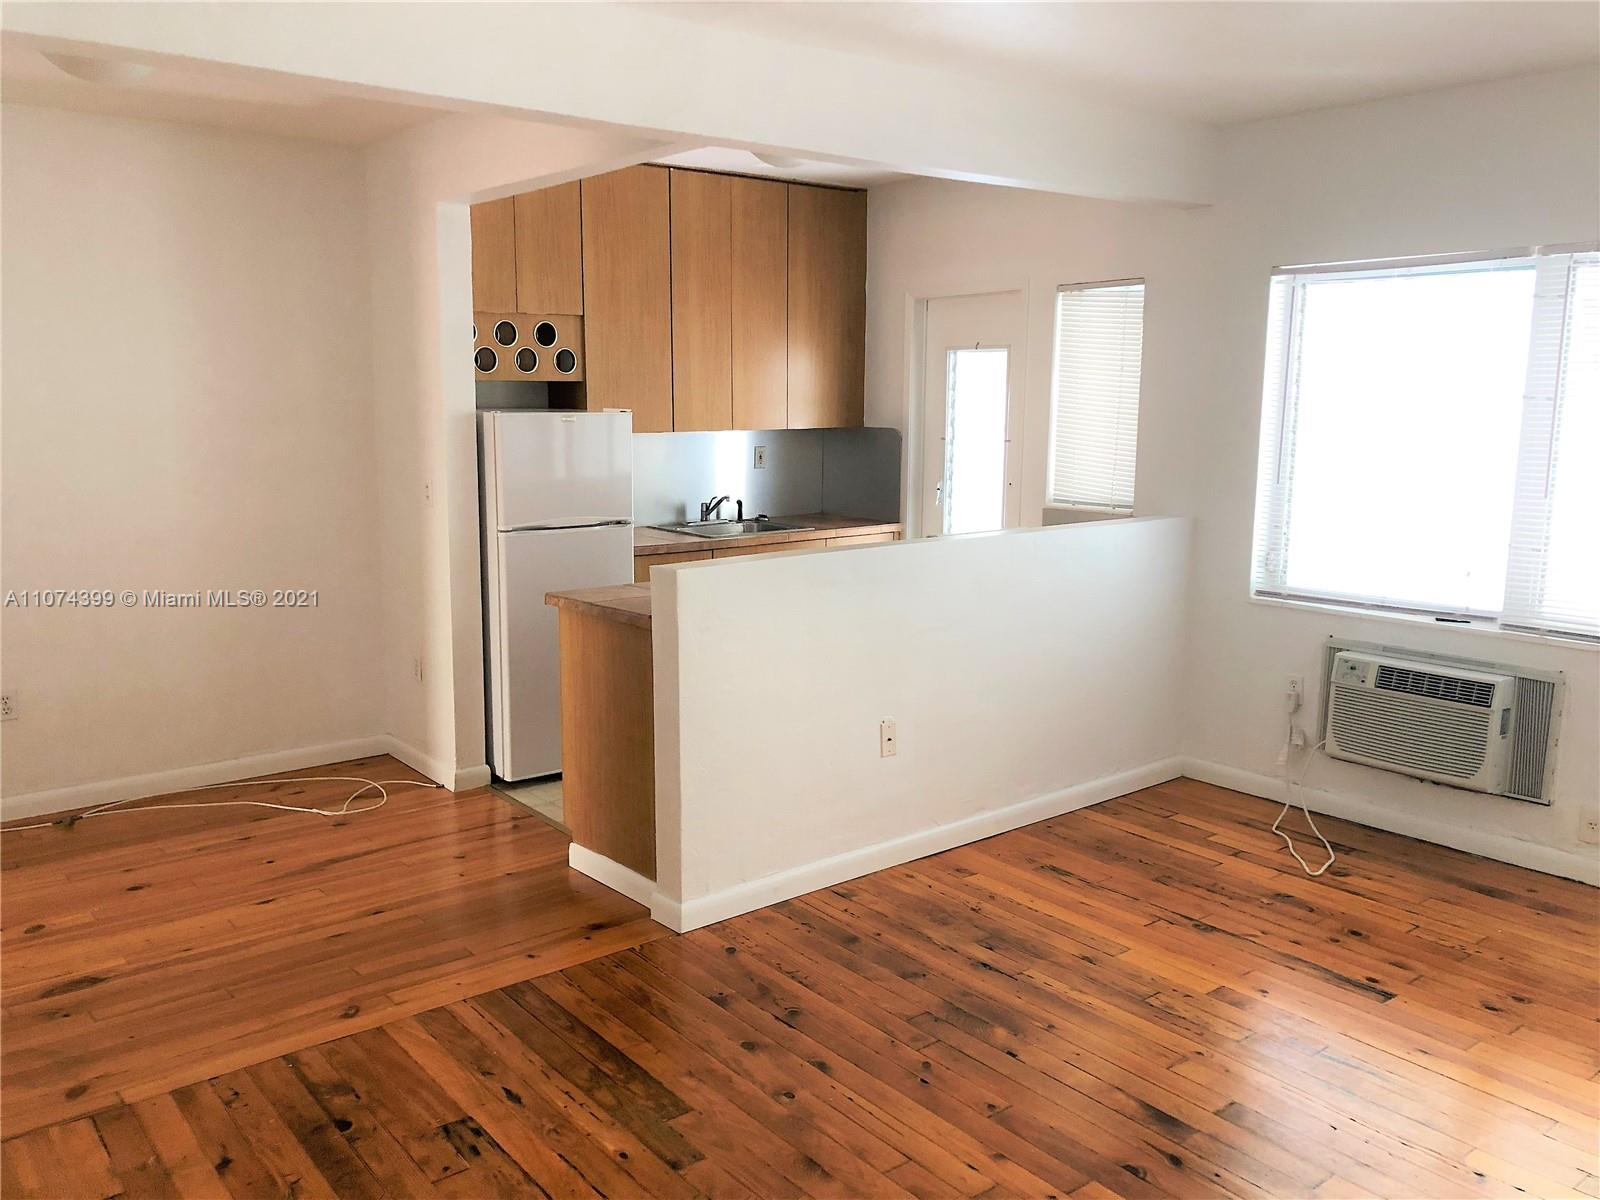 835  Meridian Ave #8 For Sale A11074399, FL